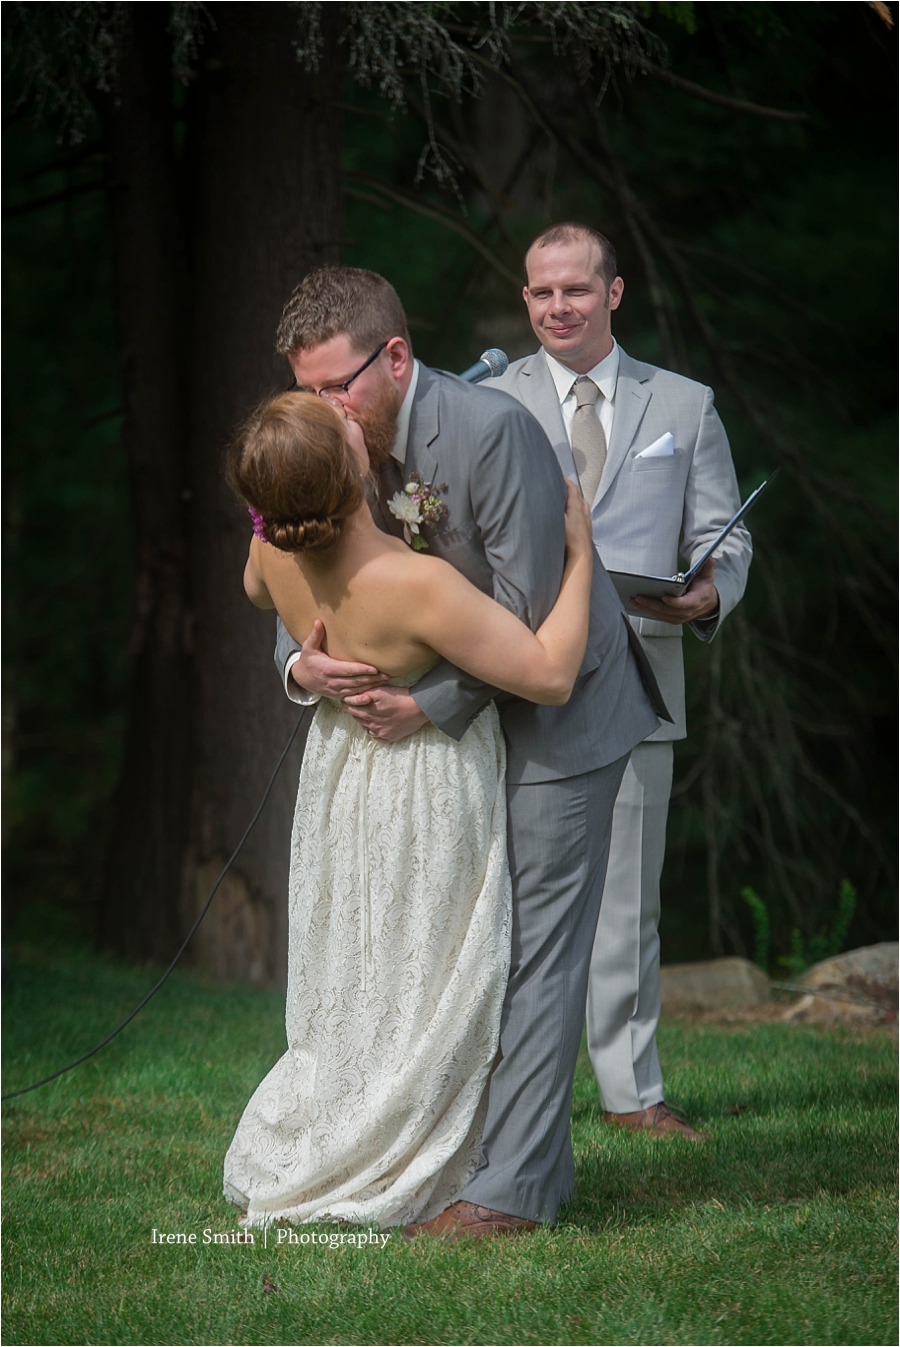 Cooks-Forest-Wedding-Photography-Irene-Smith_0014.jpg